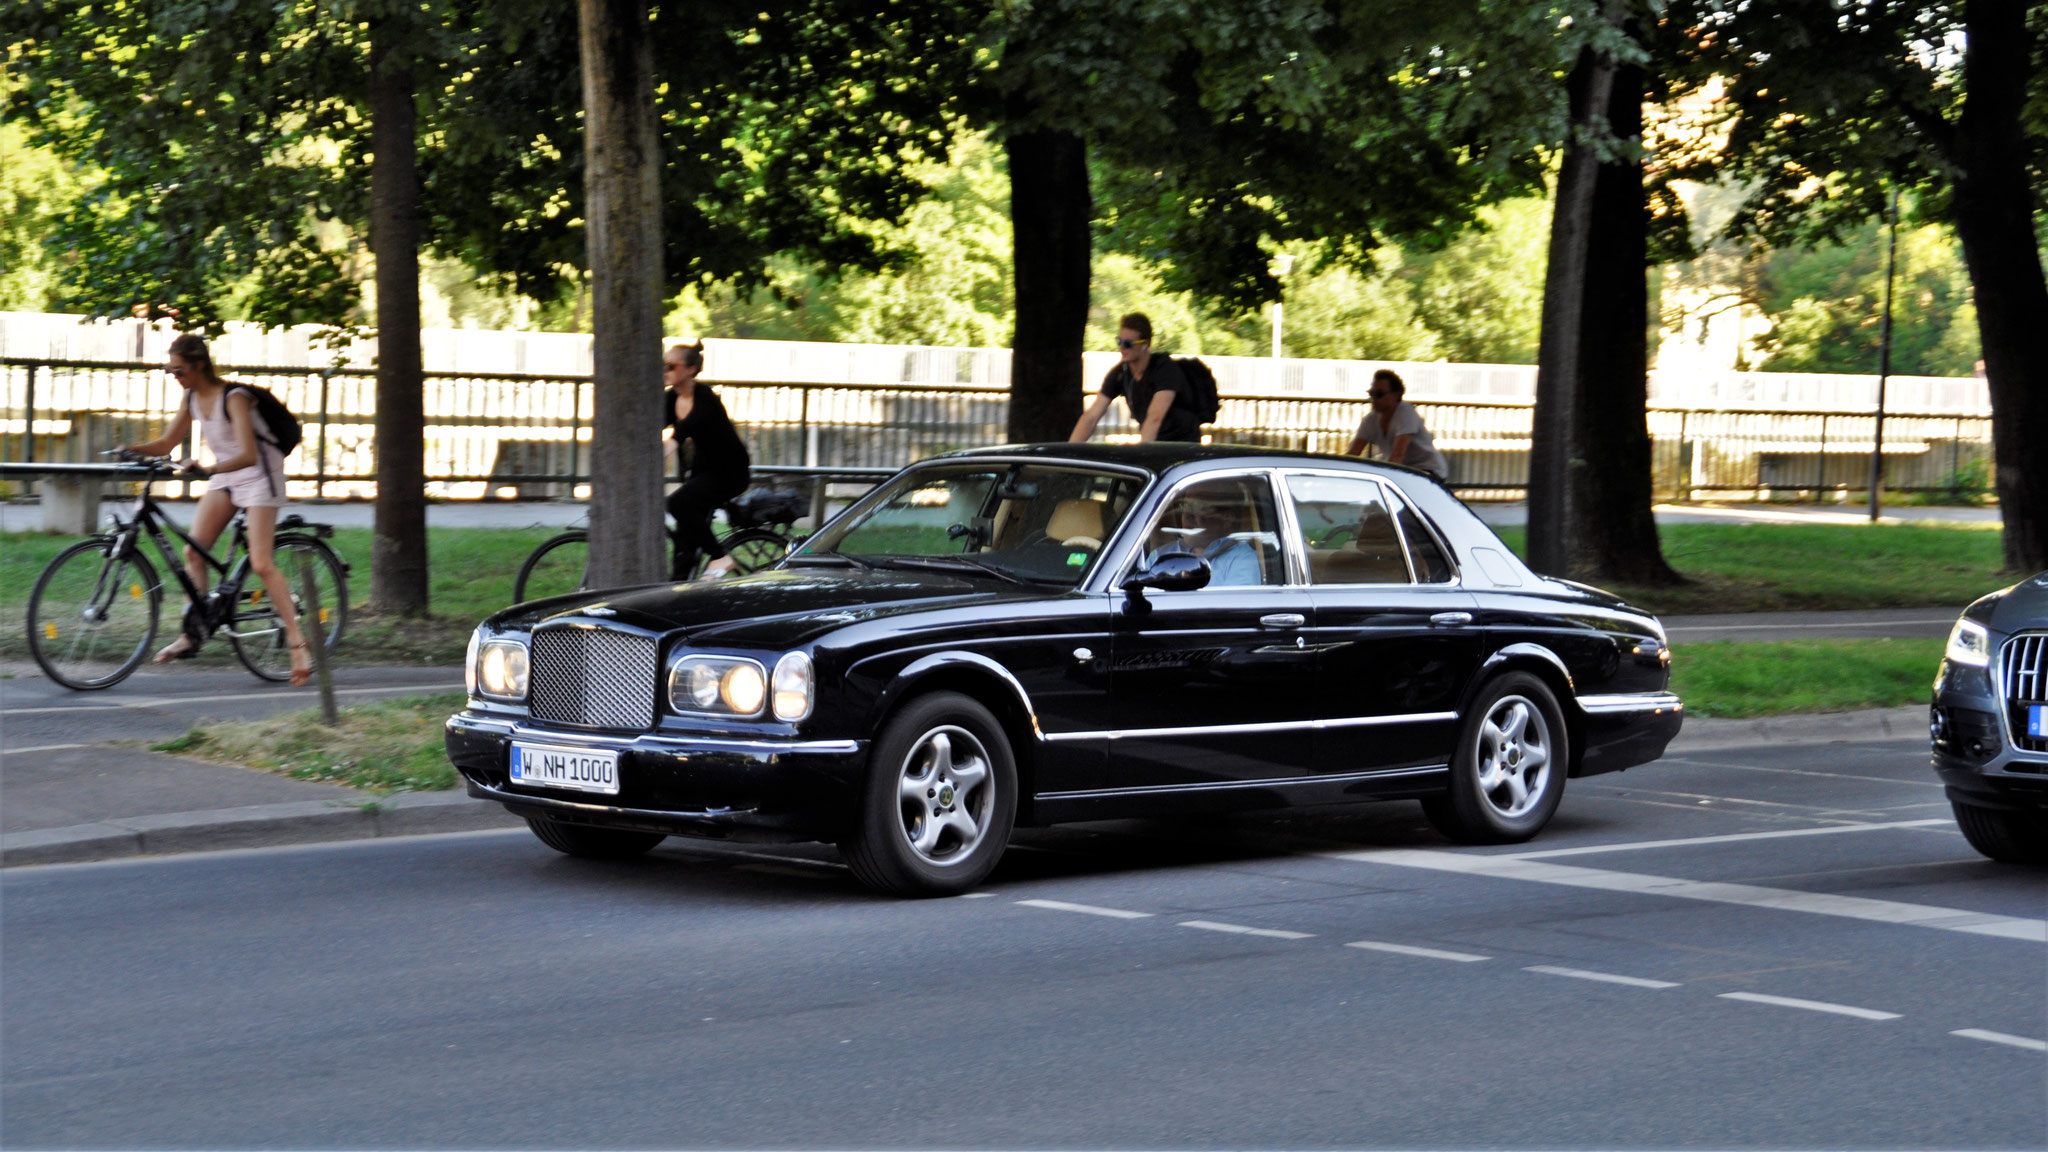 Bentley Arnage - W-NH-1000